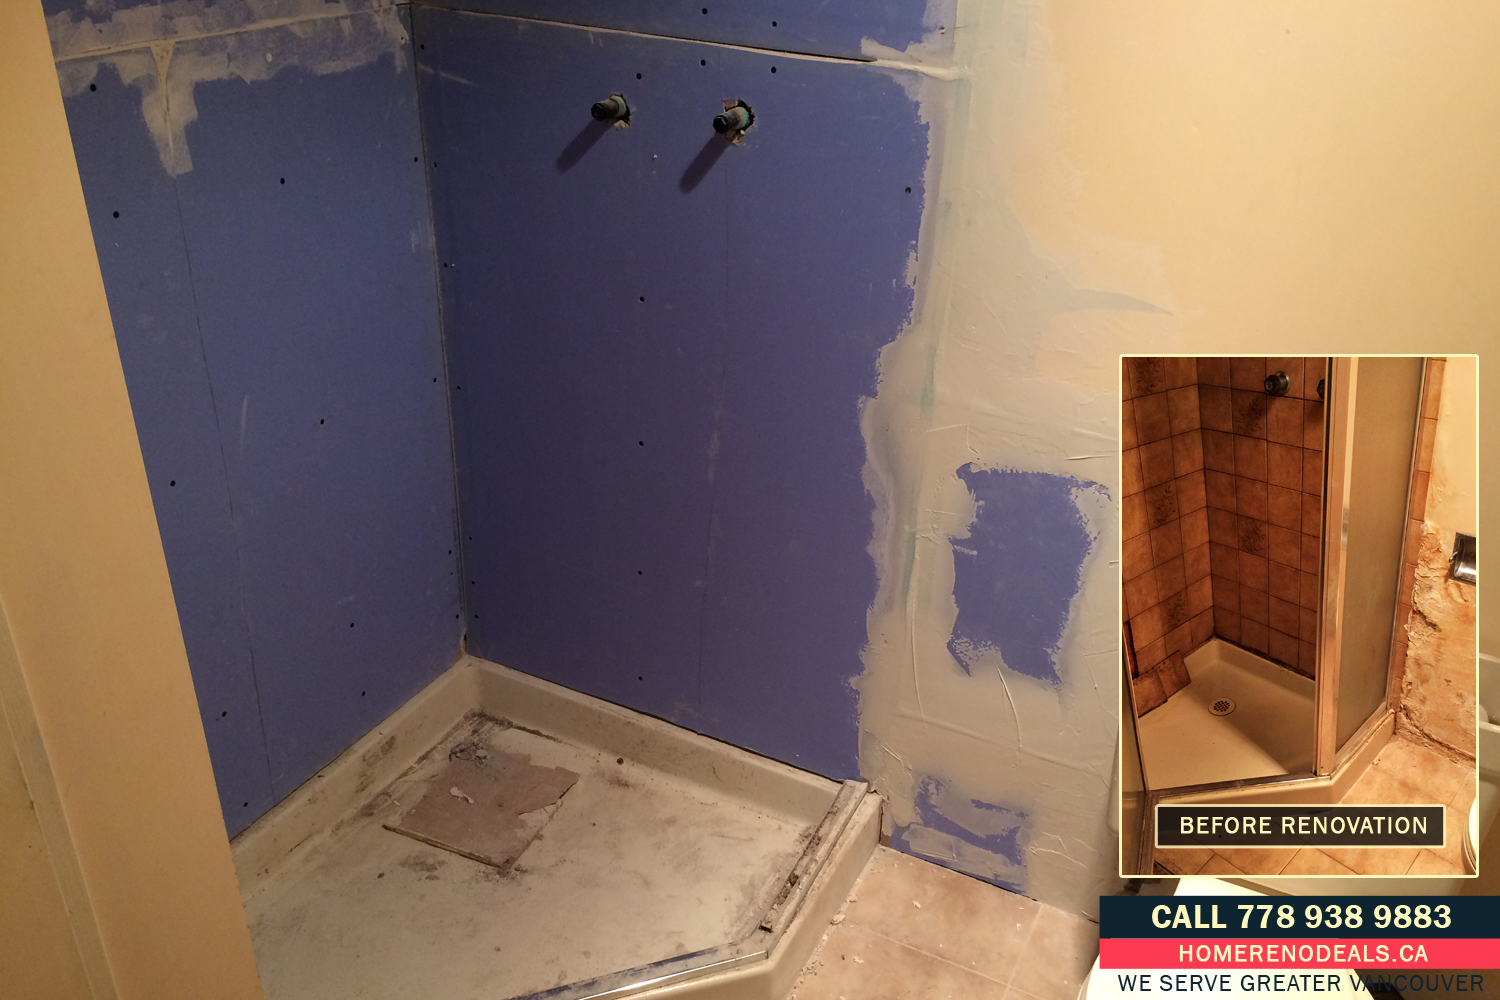 Installation of waterproof mold resistant gyprock in the bathroom